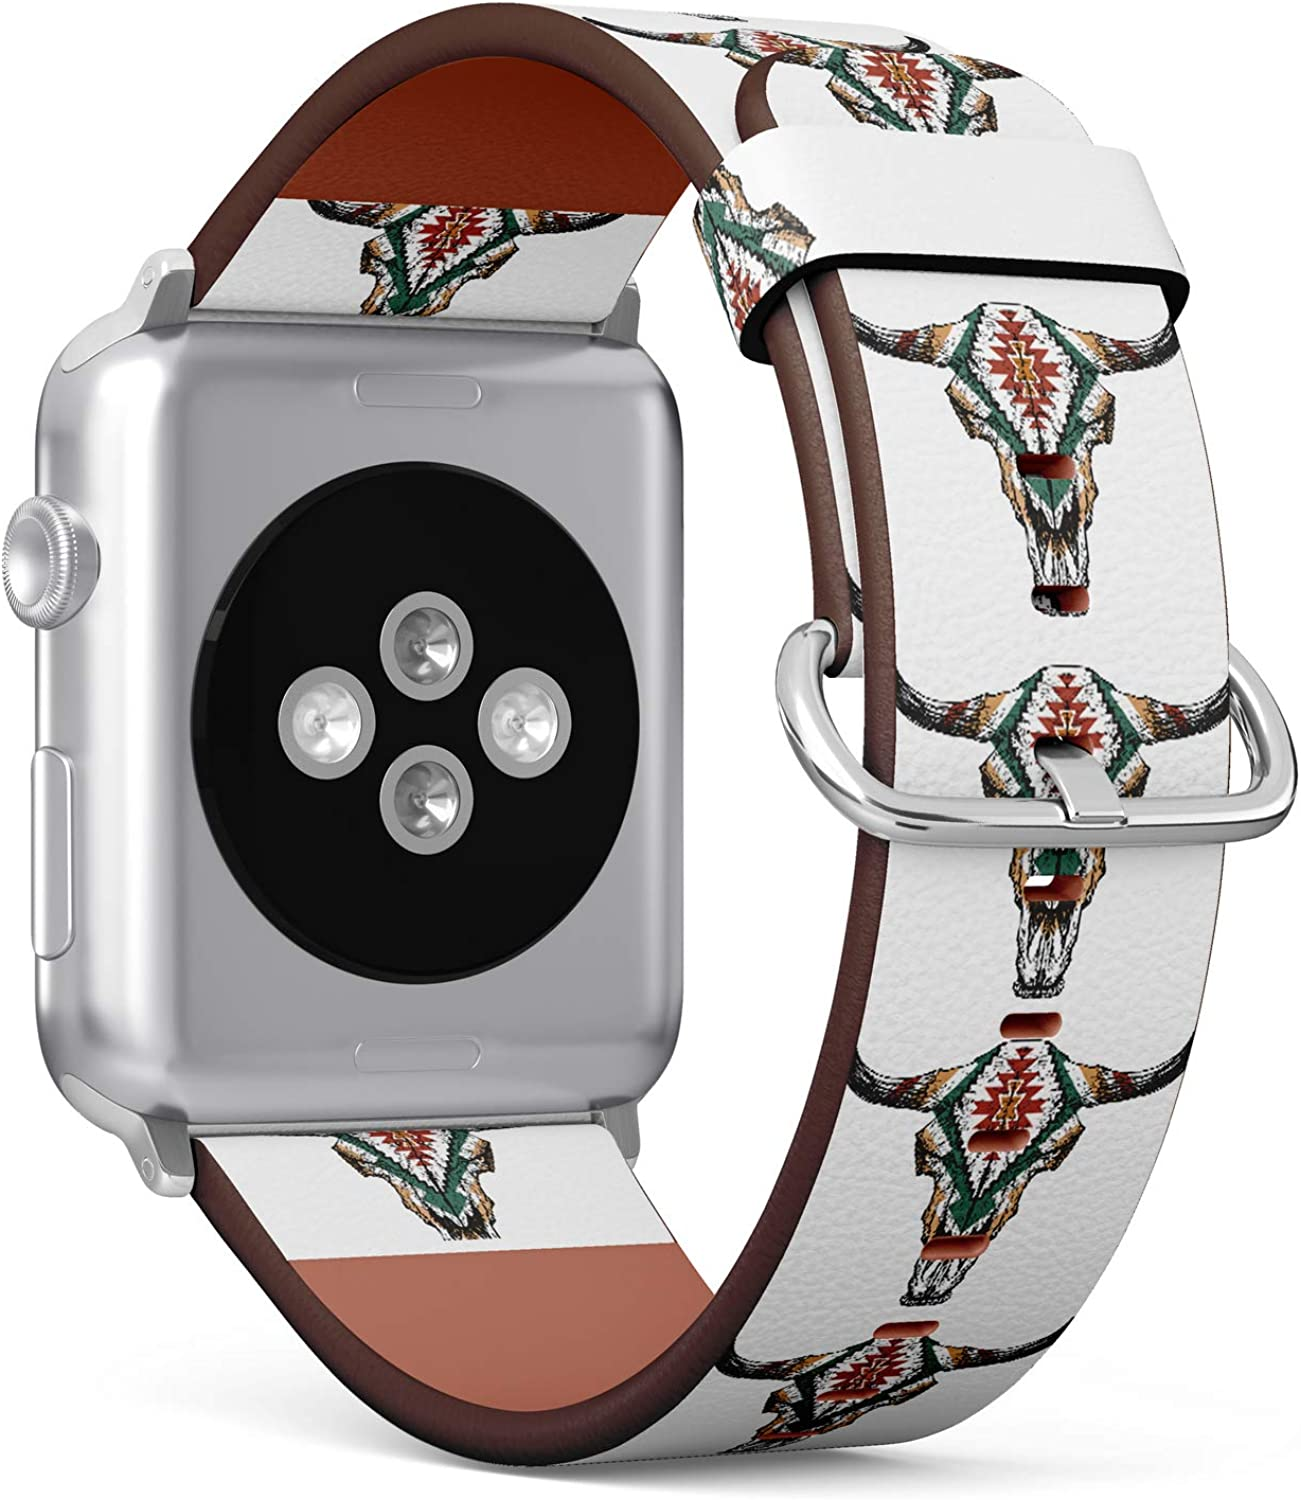 (Tribal Aztec Skull of Ram) Patterned Leather Wristband Strap for Apple Watch Series 4/3/2/1 gen,Replacement for iWatch 38mm / 40mm Bands